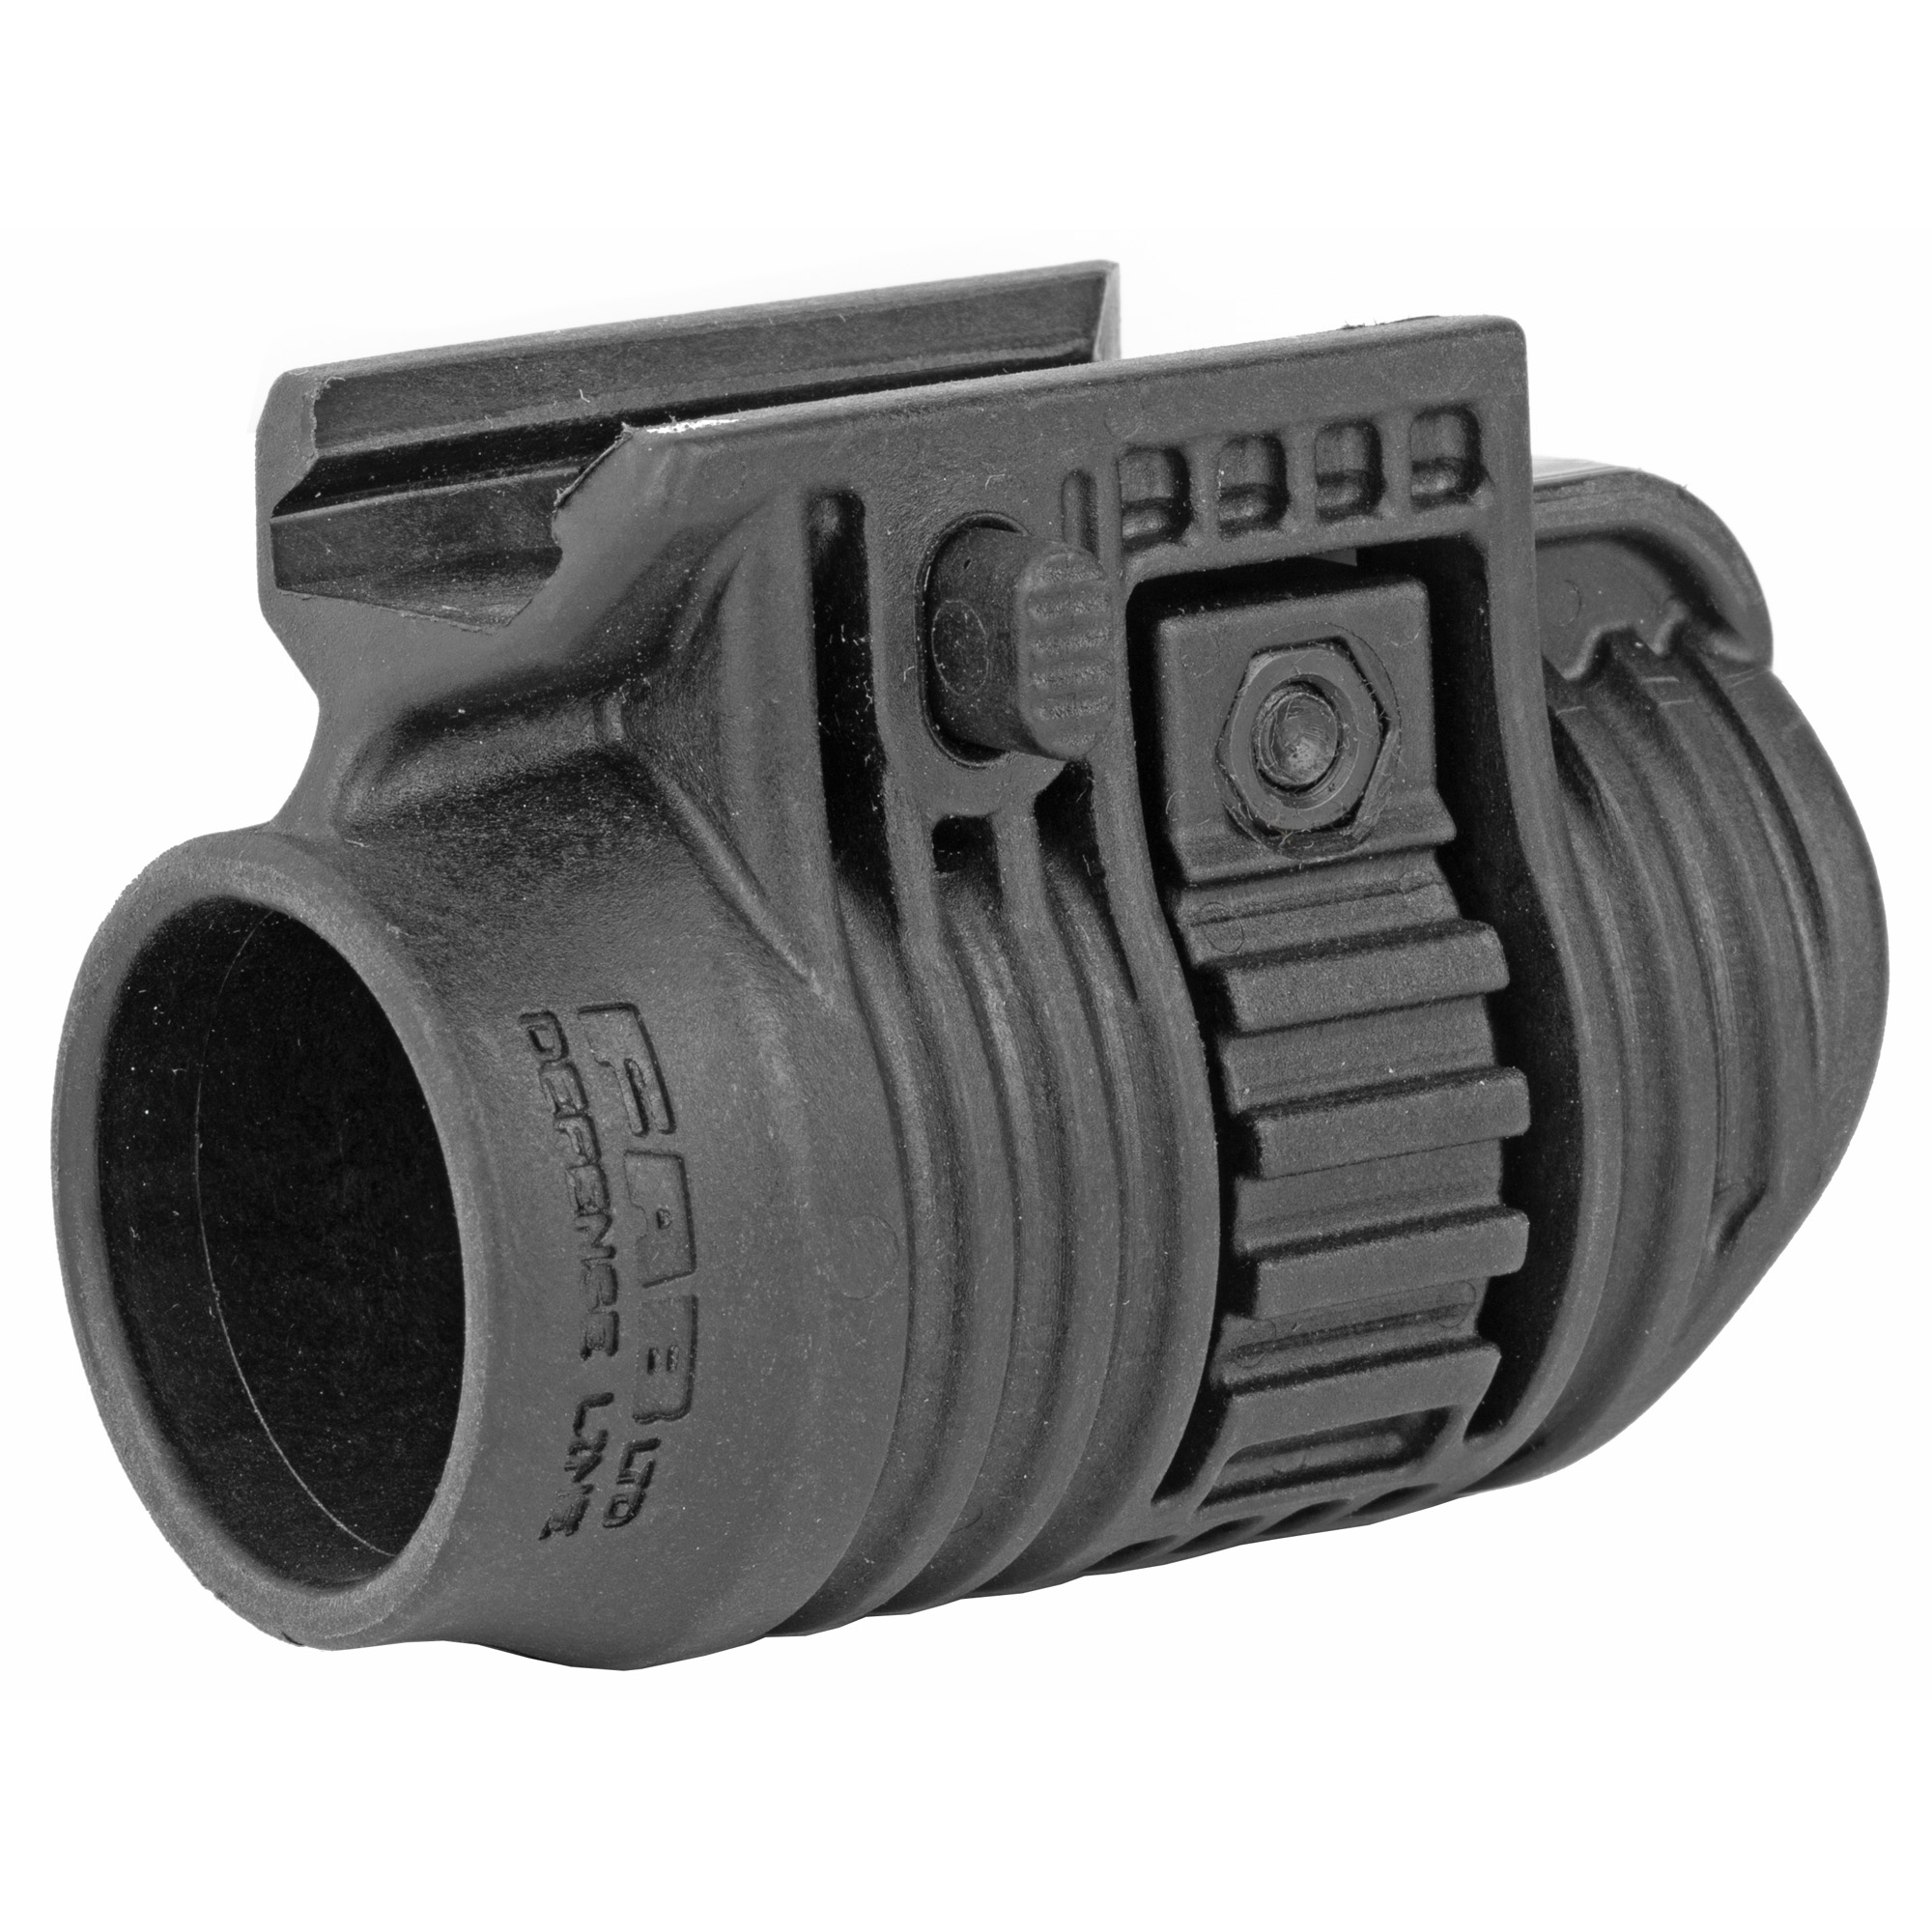 "The PLA is a high grade polymer picatinny adaptor for Tailcap activated tactical lights"" that was made to provide easy ambidextrous activation"" a solid solution for your light mounting."